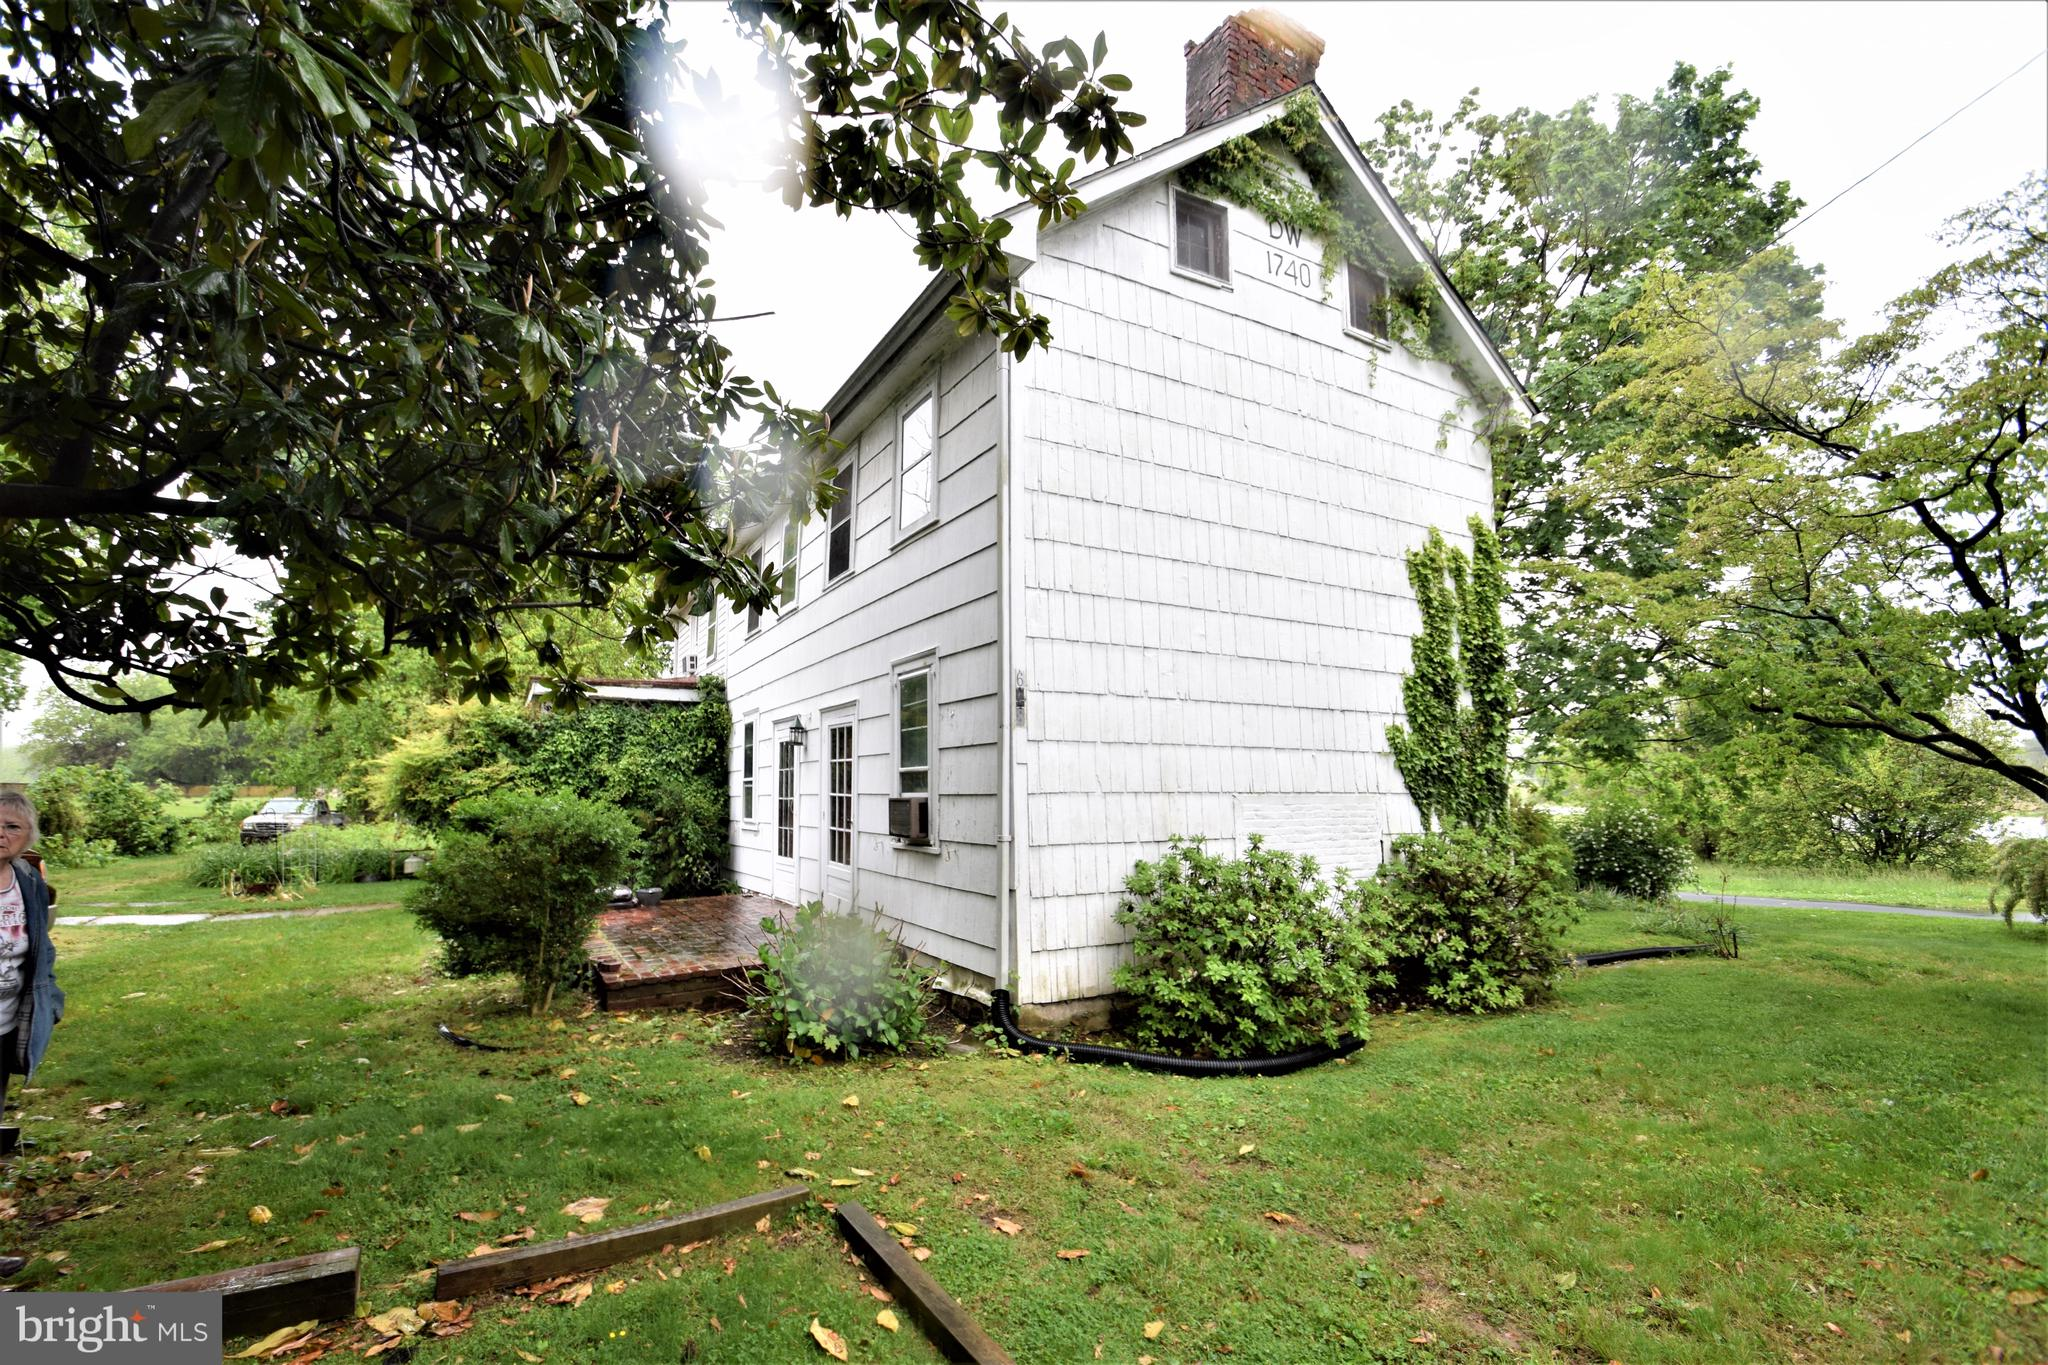 Visit this home virtually: http://www.vht.com/434065140/IDXS - This is a lovely home in Historic Osessa, Delaware. 3 bedrooms and 2 full bathrooms. Charm and character abound! You can purchase with some or all of the antique furniture. Wonderful random width wood floors. Several sets of spiral staircases. Fireplaces galore! Adjacent to the Appoquinimink Quaker meeting house, and across the street from Odessa Memorial Park and playground. Some things such as bathrooms need updating. First floor laundry, large three season room several sheds and out buildings. Home is being sold as-is. Sellers have never lived in the property.